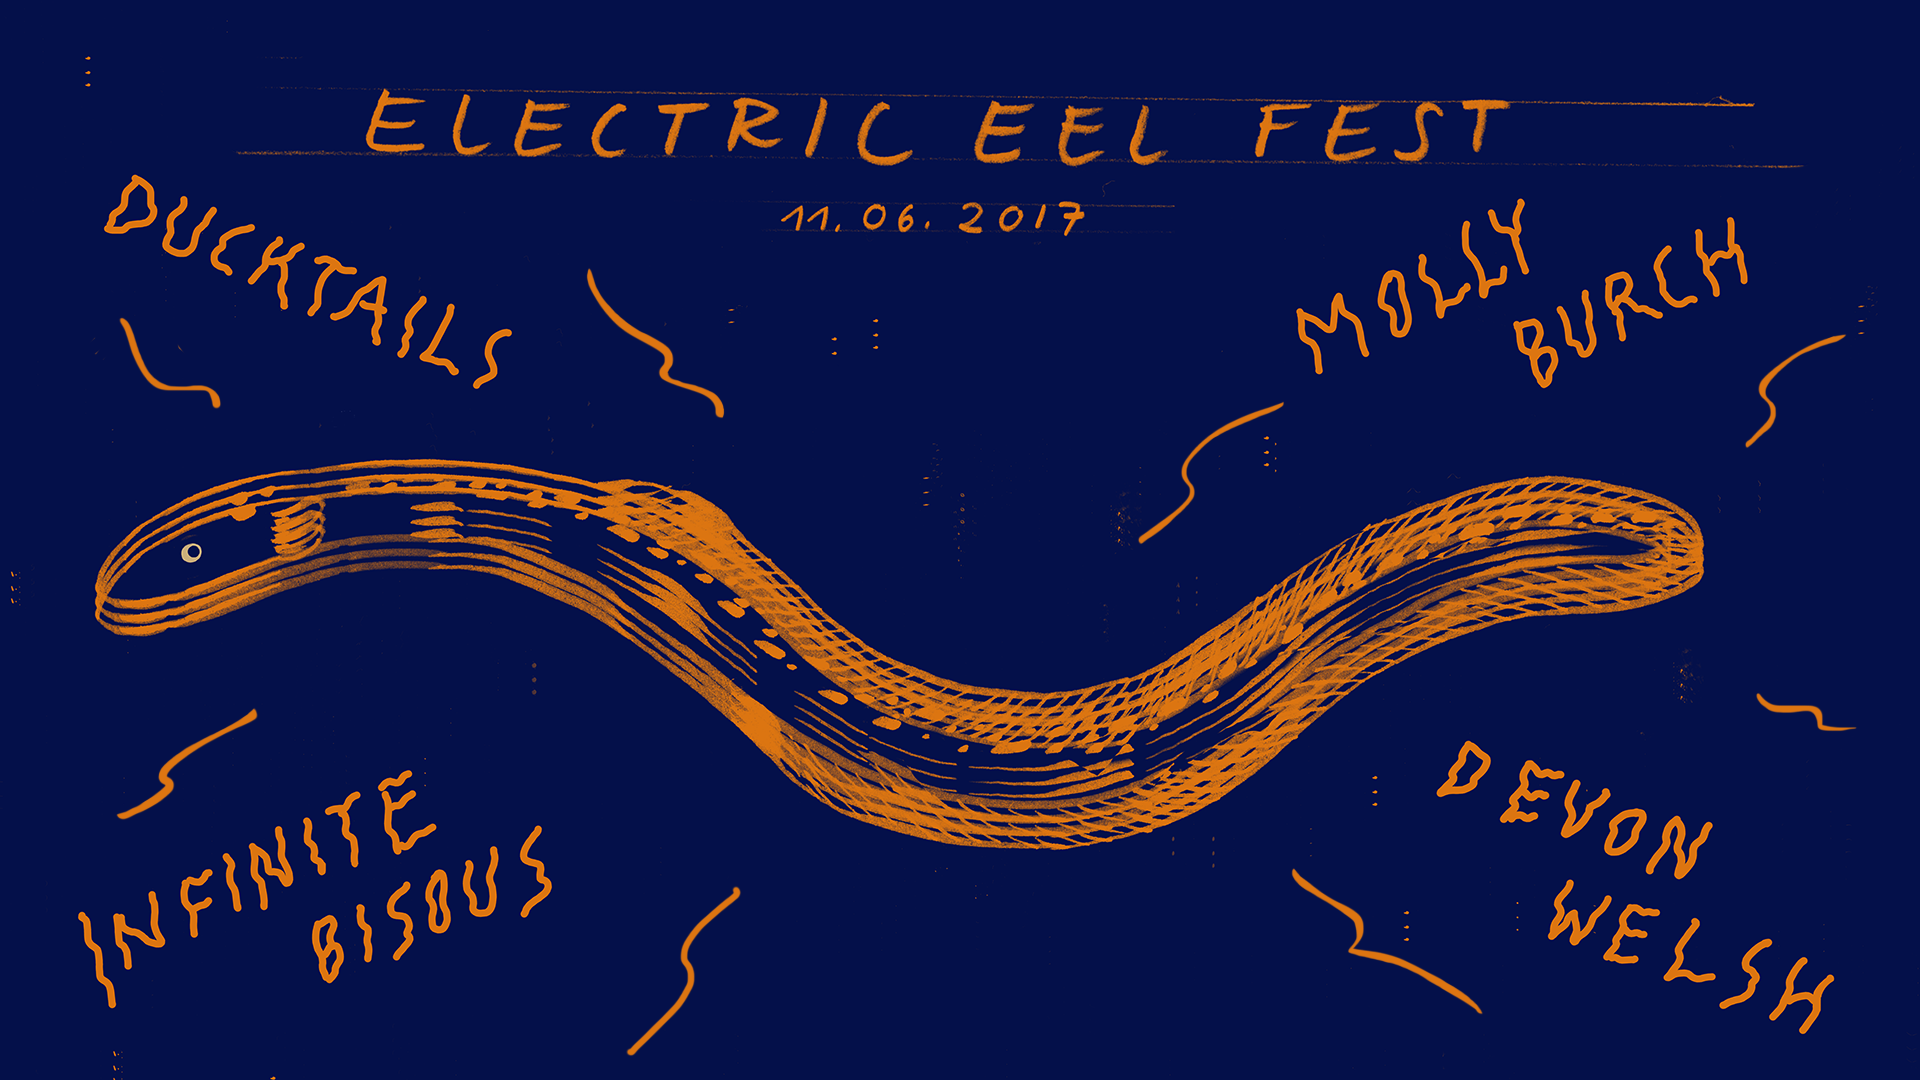 Preview: ELECTRIC EEL FEST